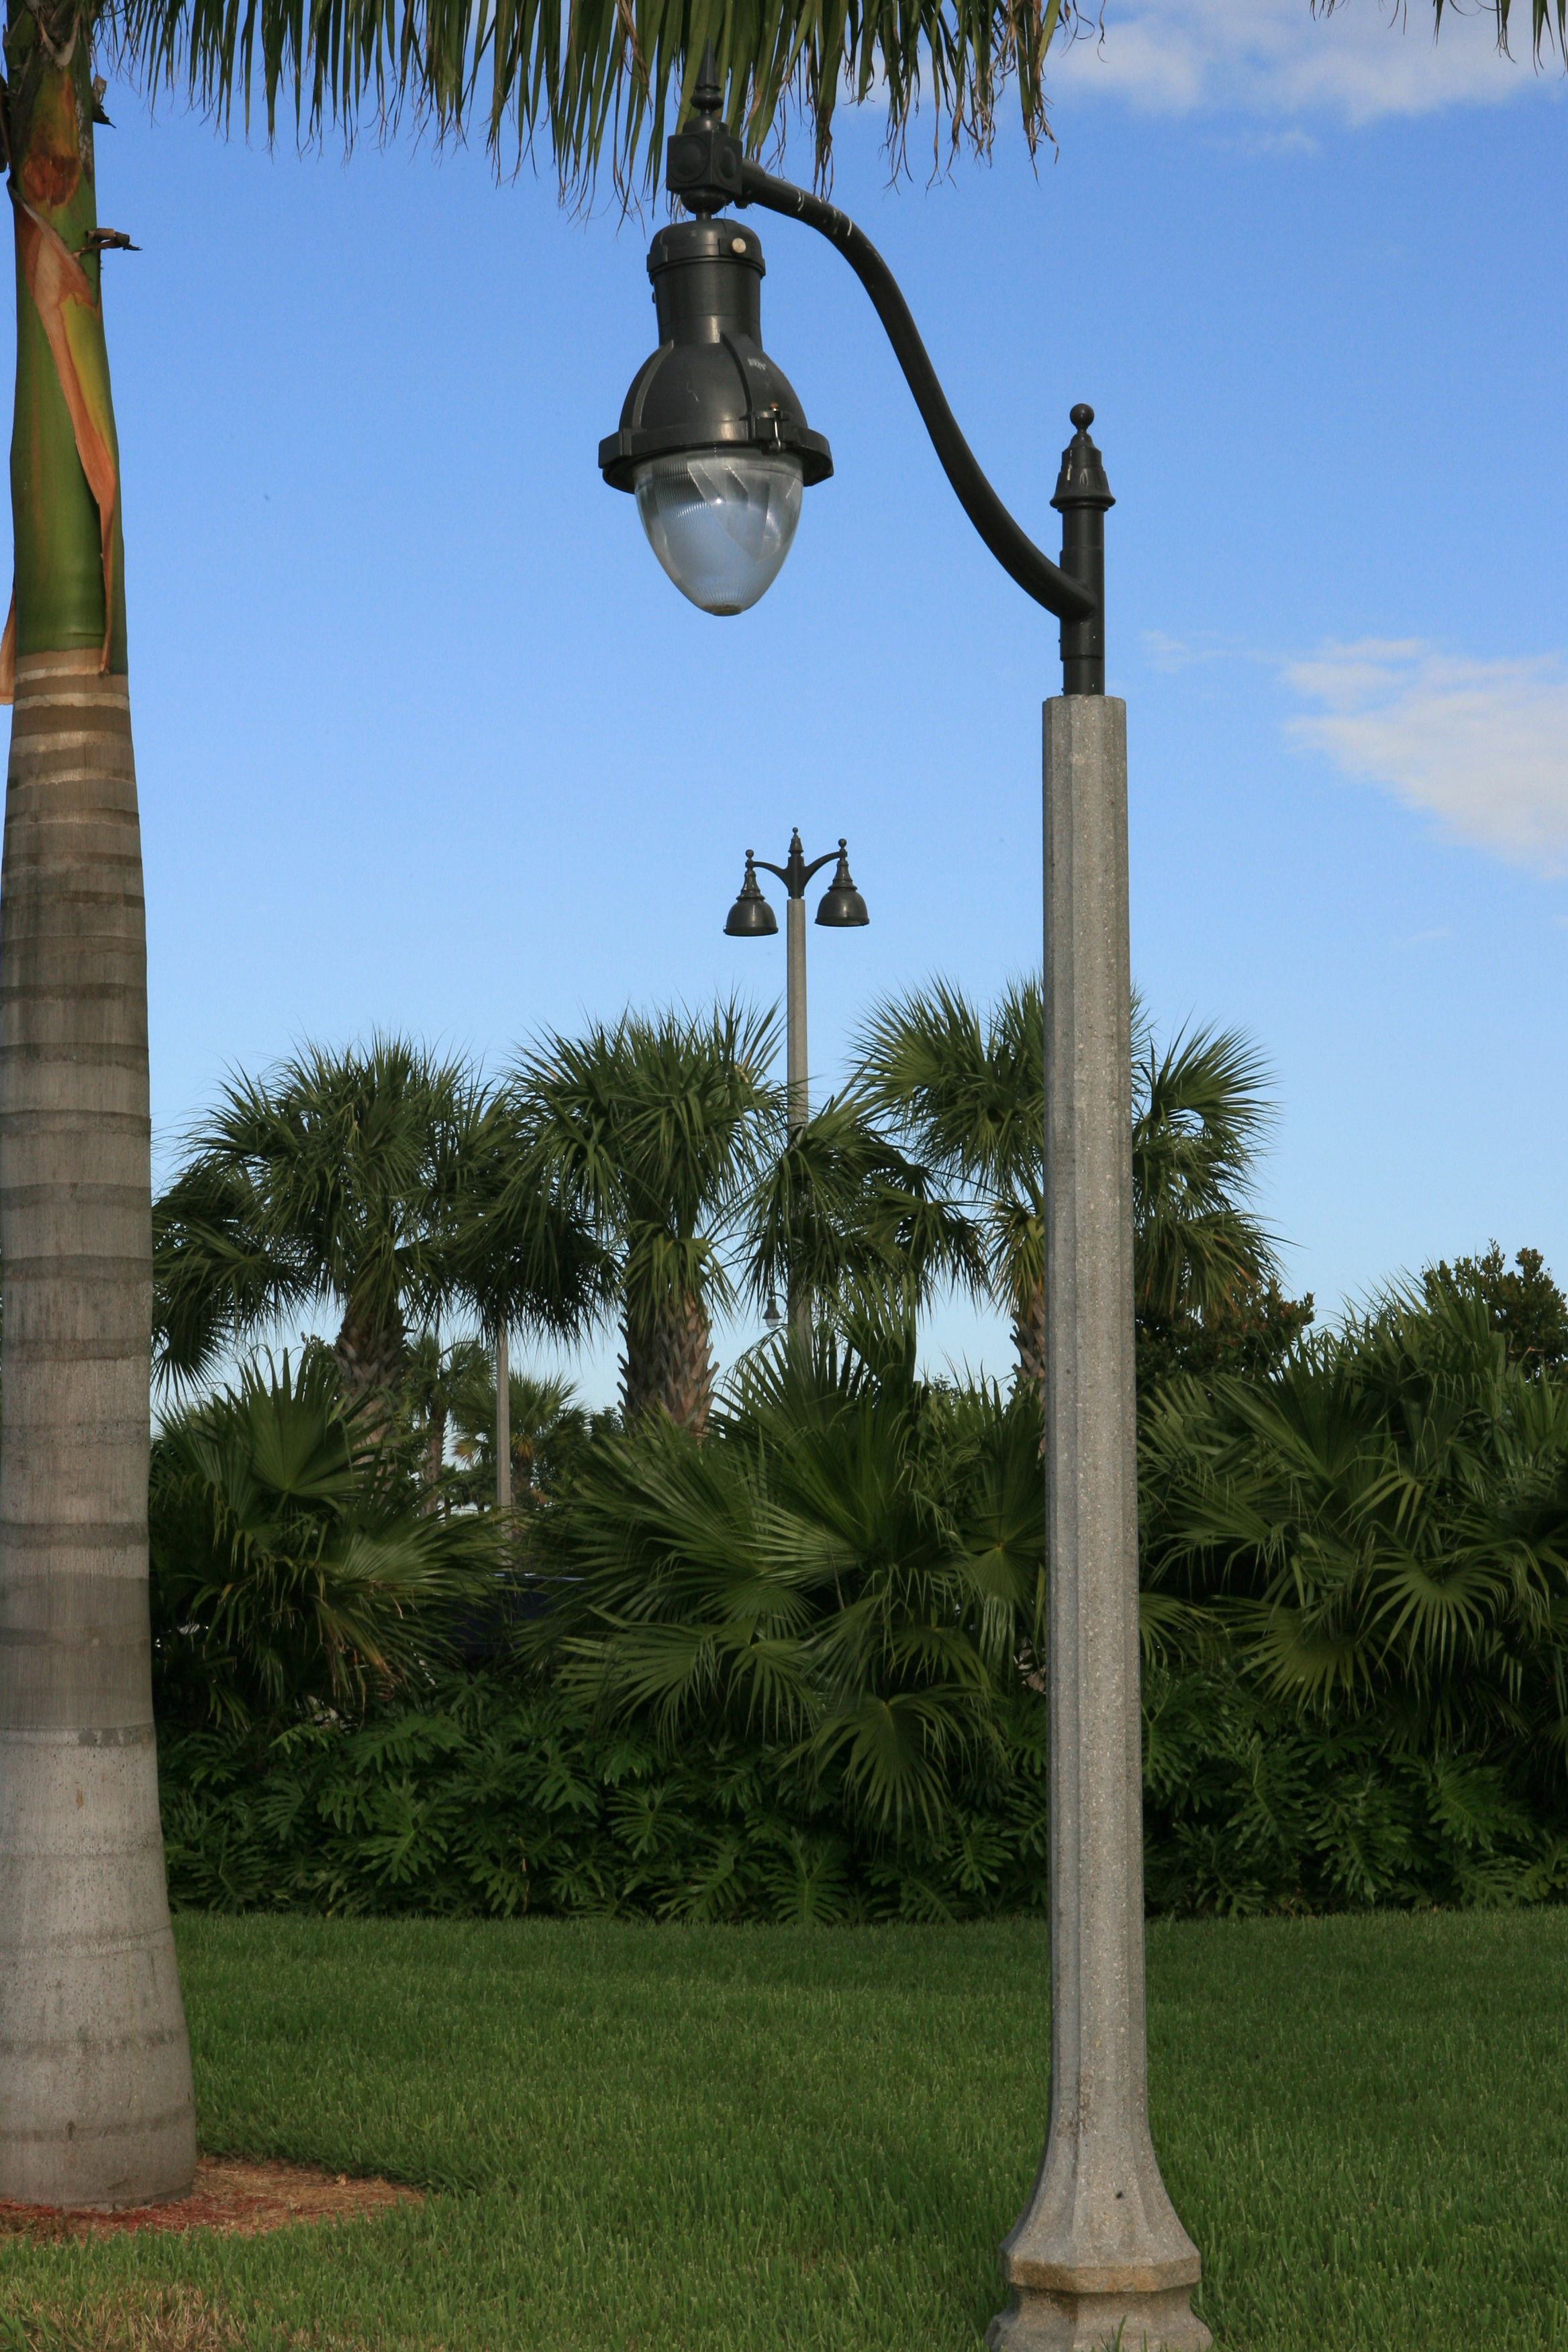 A street lamp next to a palm tree